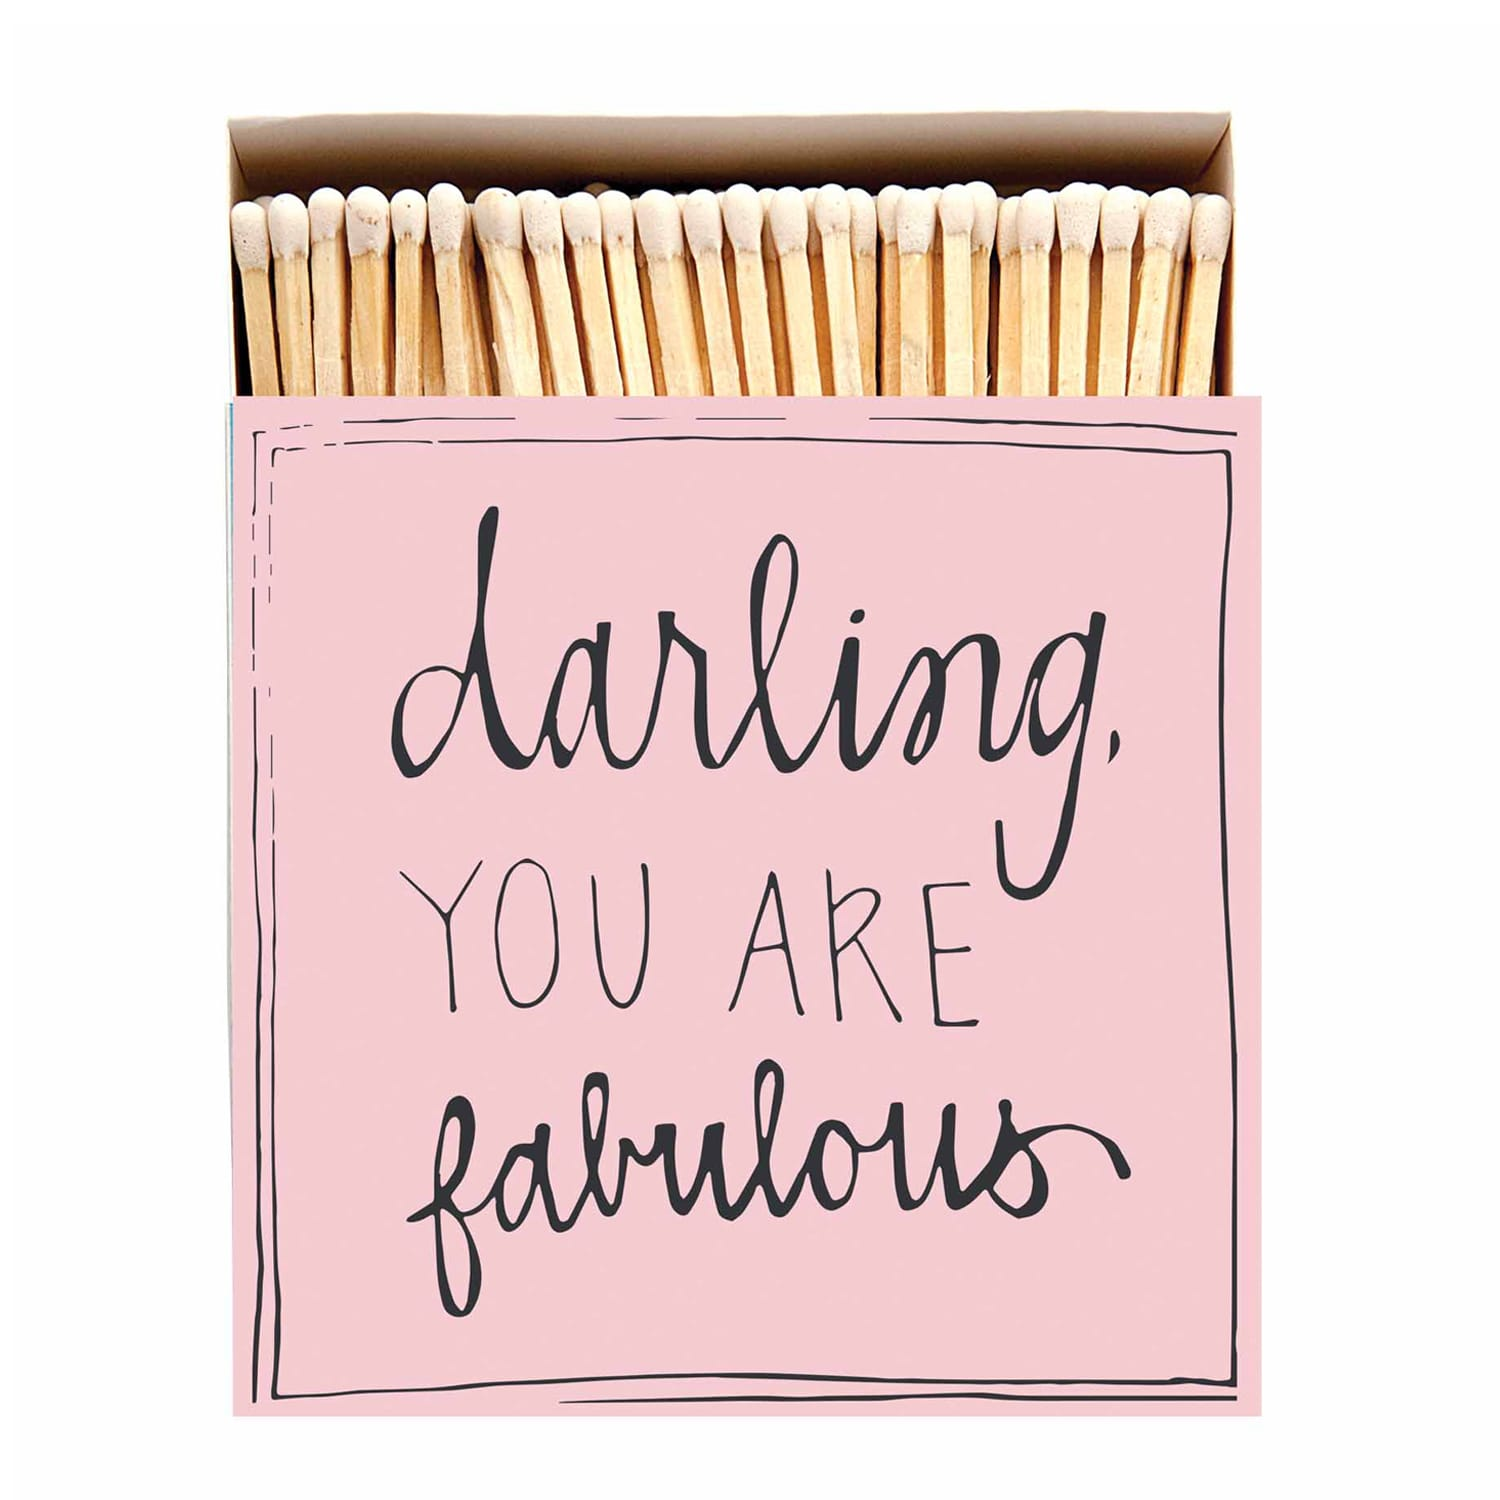 Archivist 'Darling You Are Fabulous' Box Of Matches